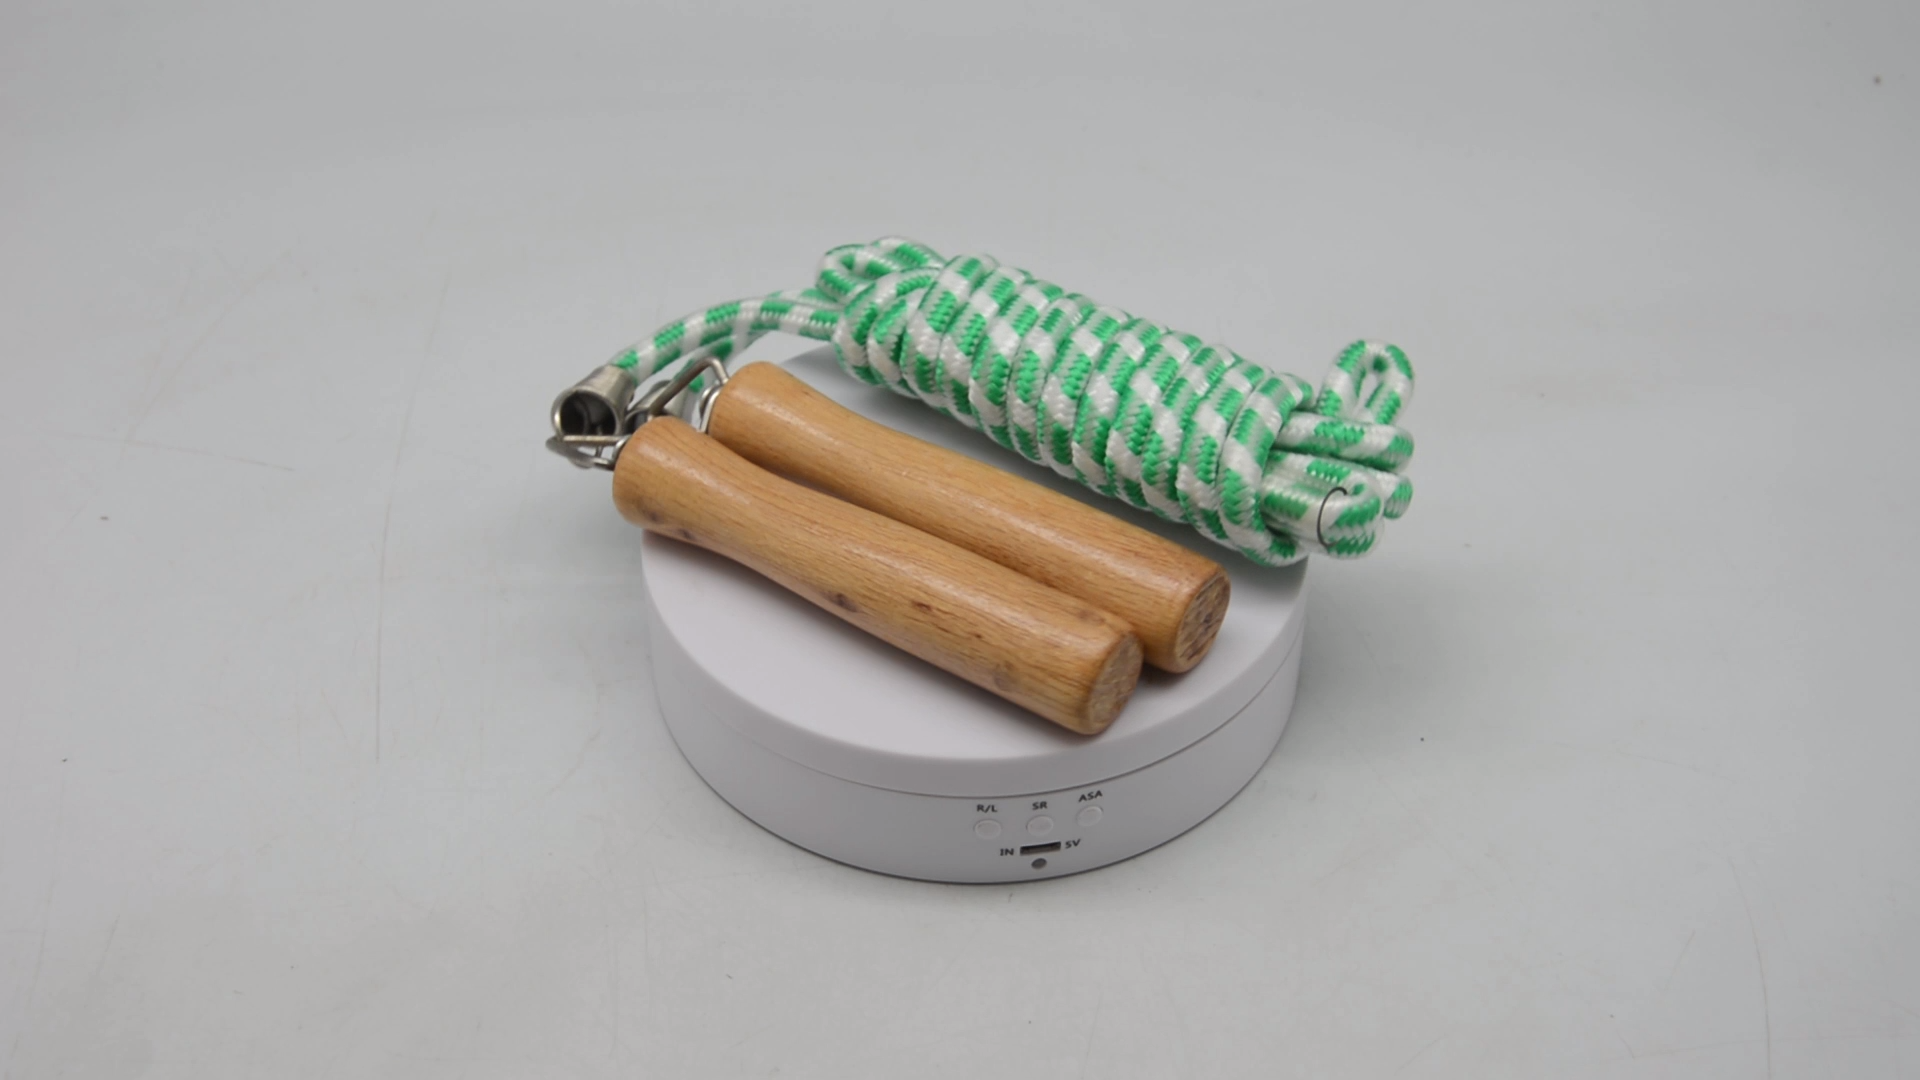 Promotional Wooden Handle Skipping Rope for Match